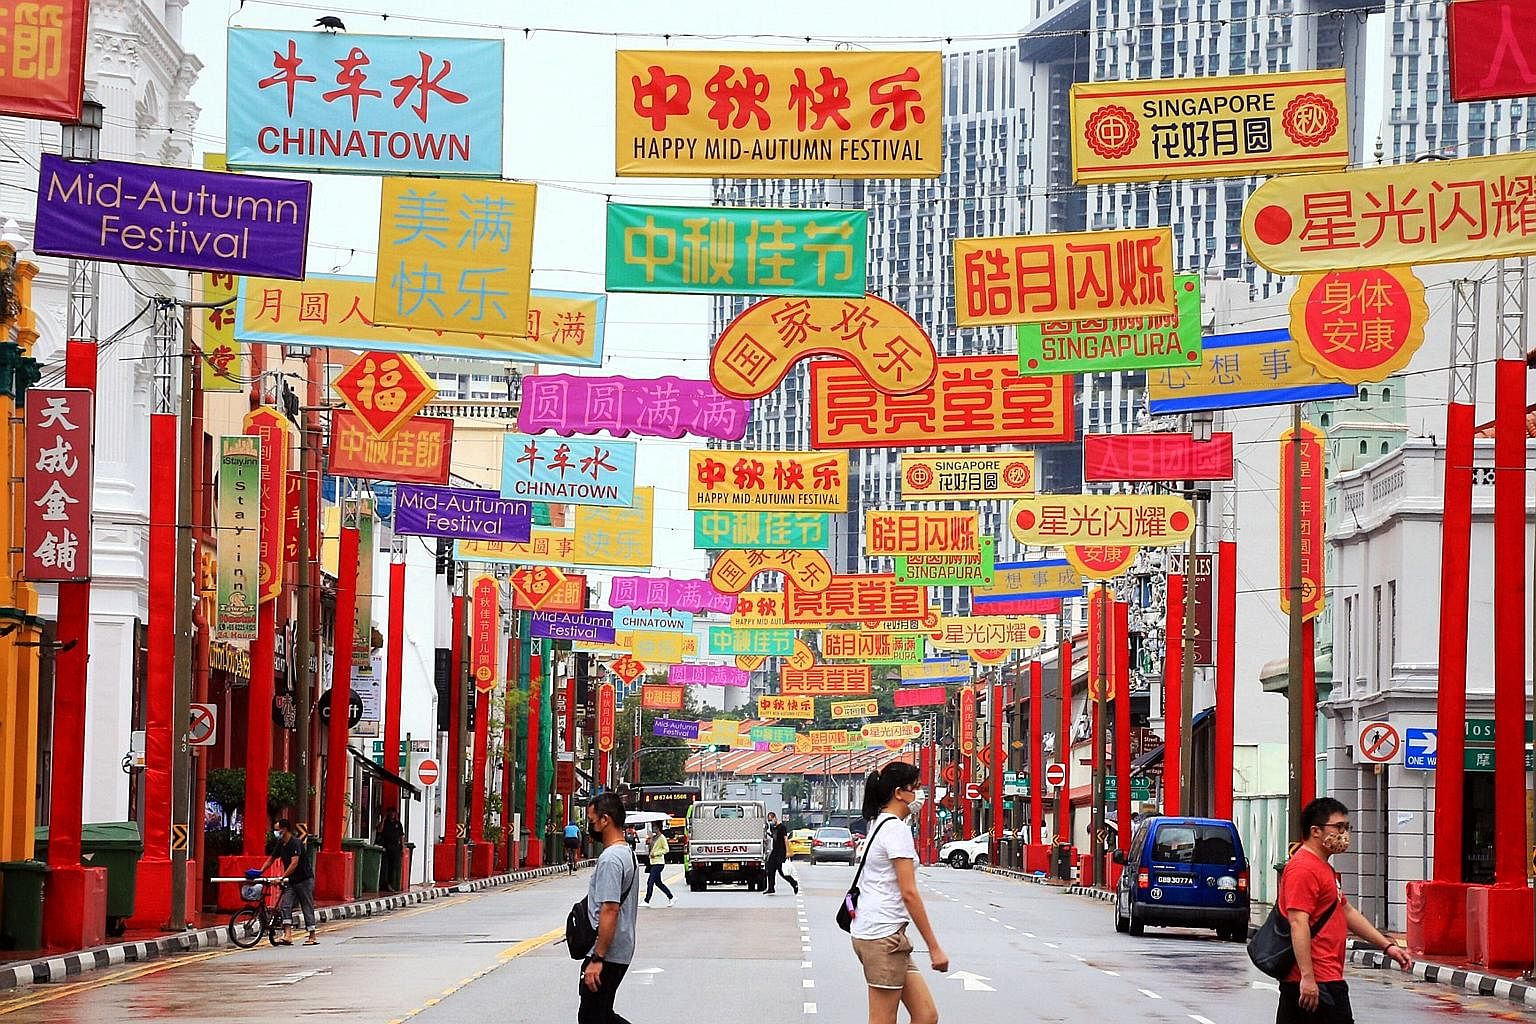 Chinatown Lantern Decorations To Be Replaced Singapore News Top Stories The Straits Times